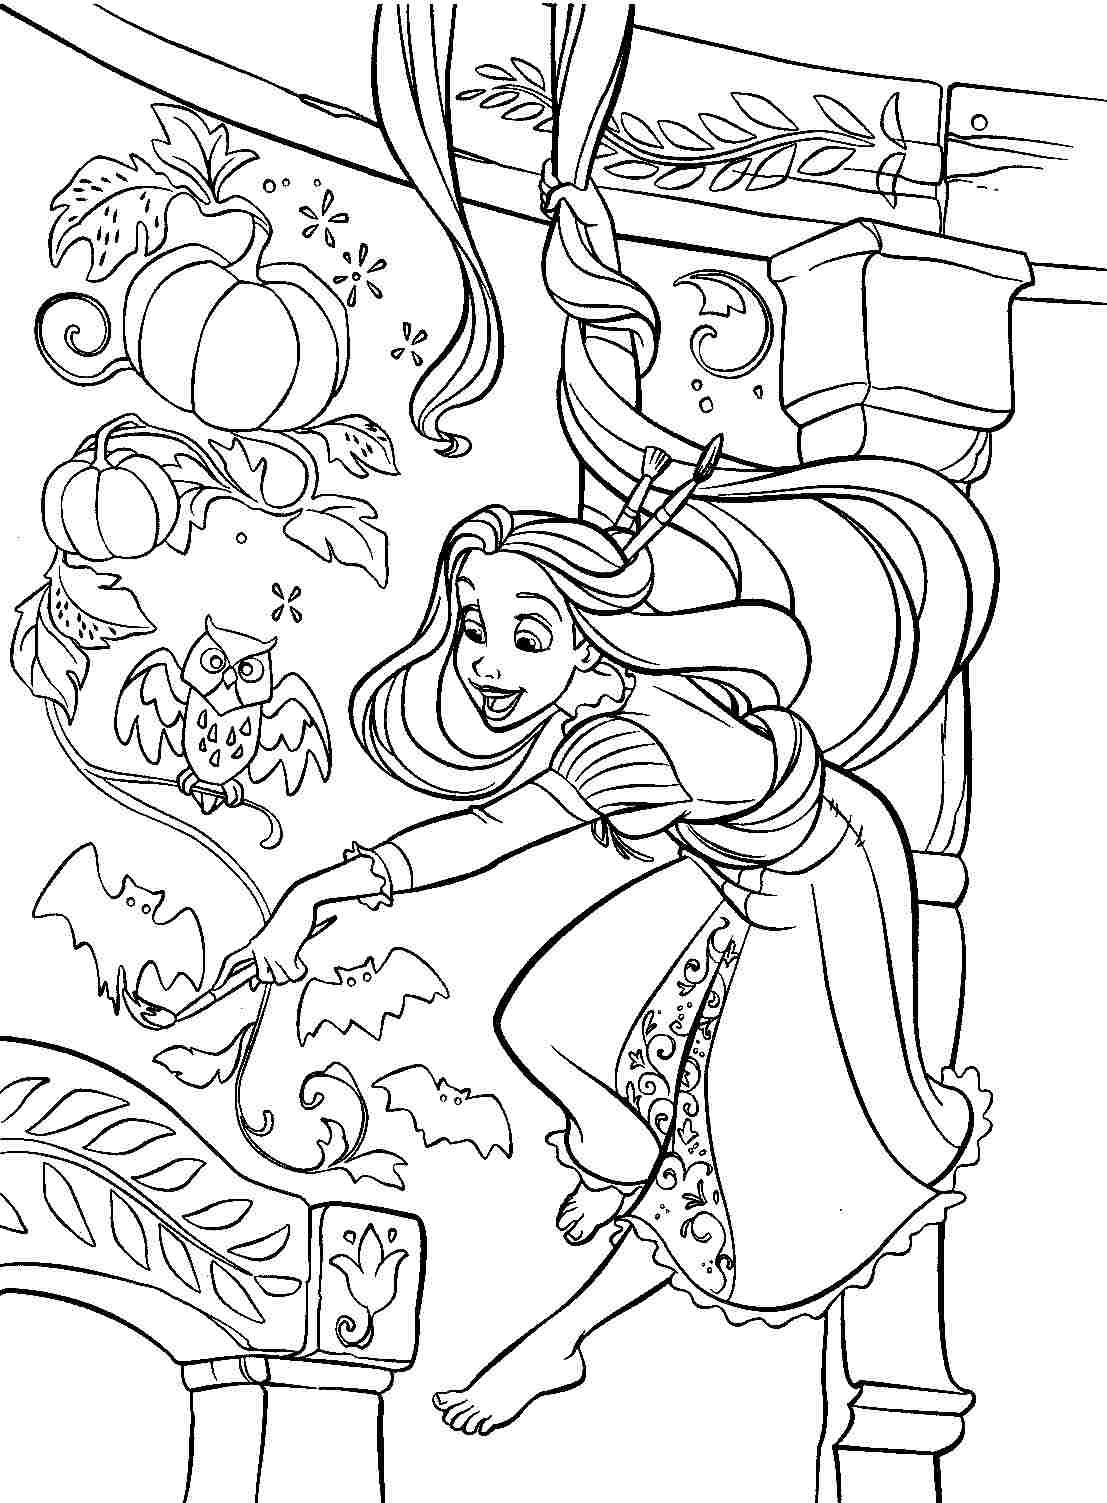 Free Printable Coloring Pages Disney Princess Tangled Rapunzel For Kids Girls Tangled Coloring Pages Rapunzel Coloring Pages Baby Coloring Pages